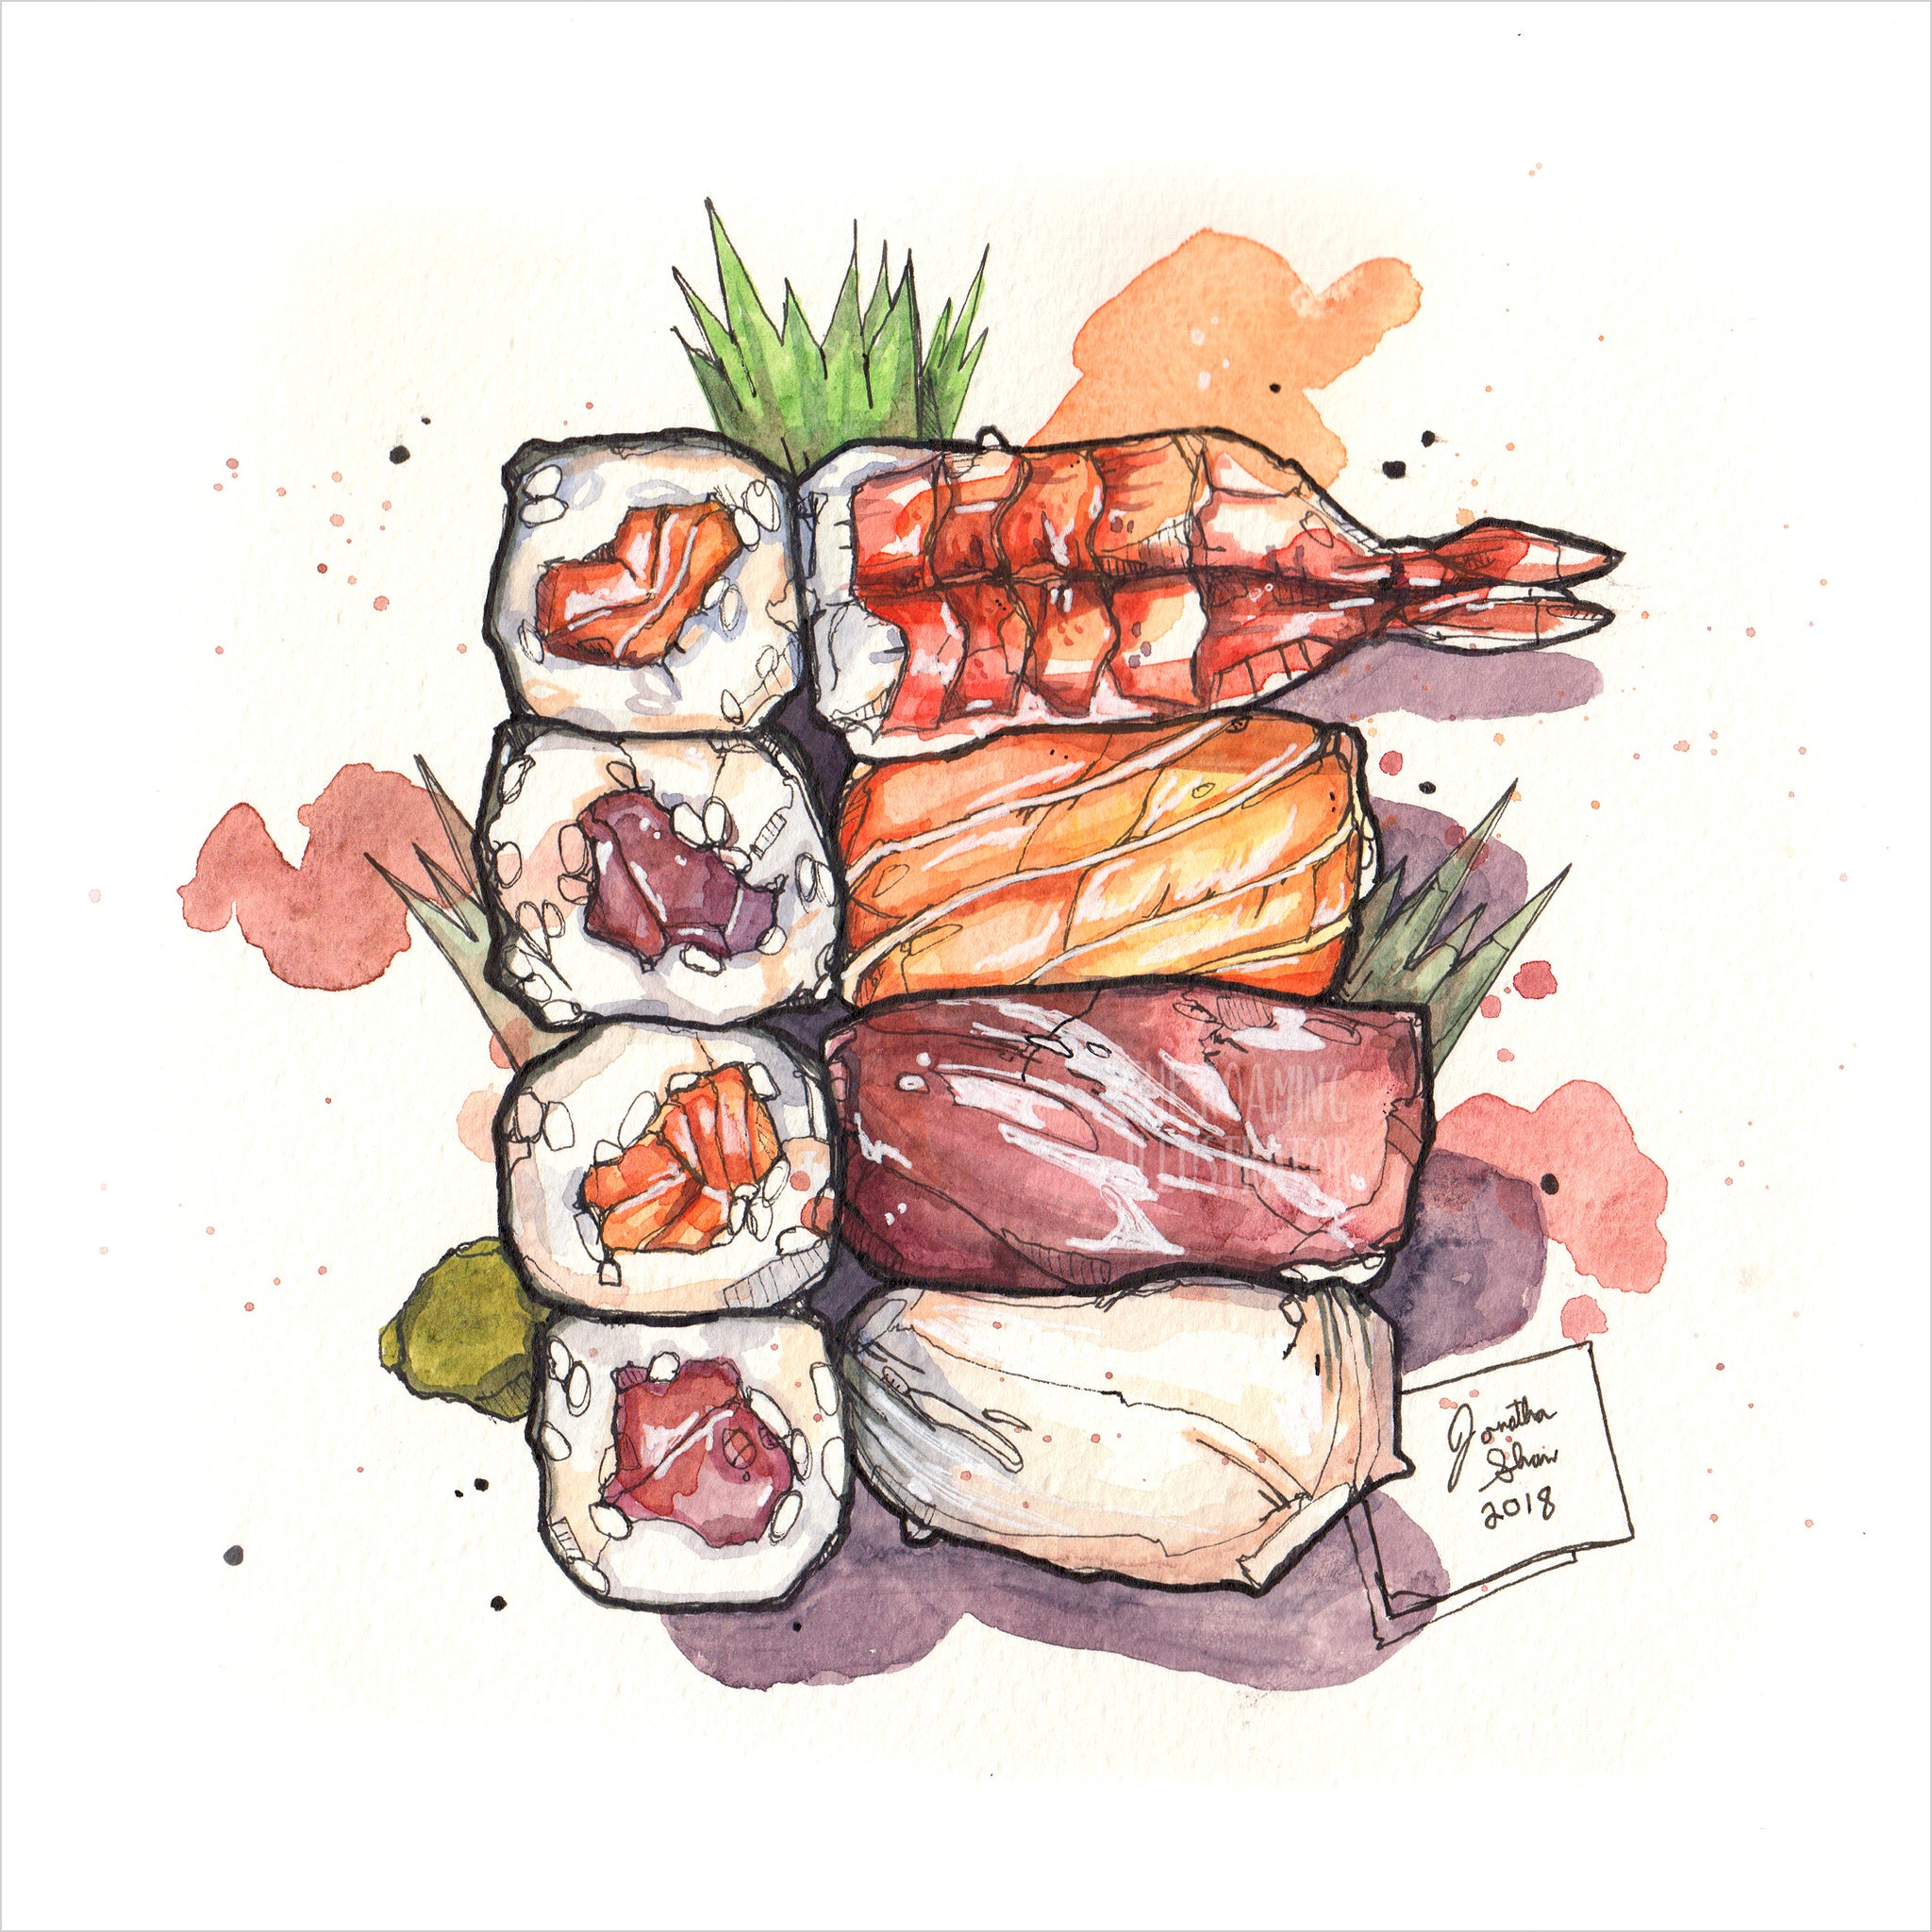 """Sushi Tray"" - 8x10 Reproduction print"